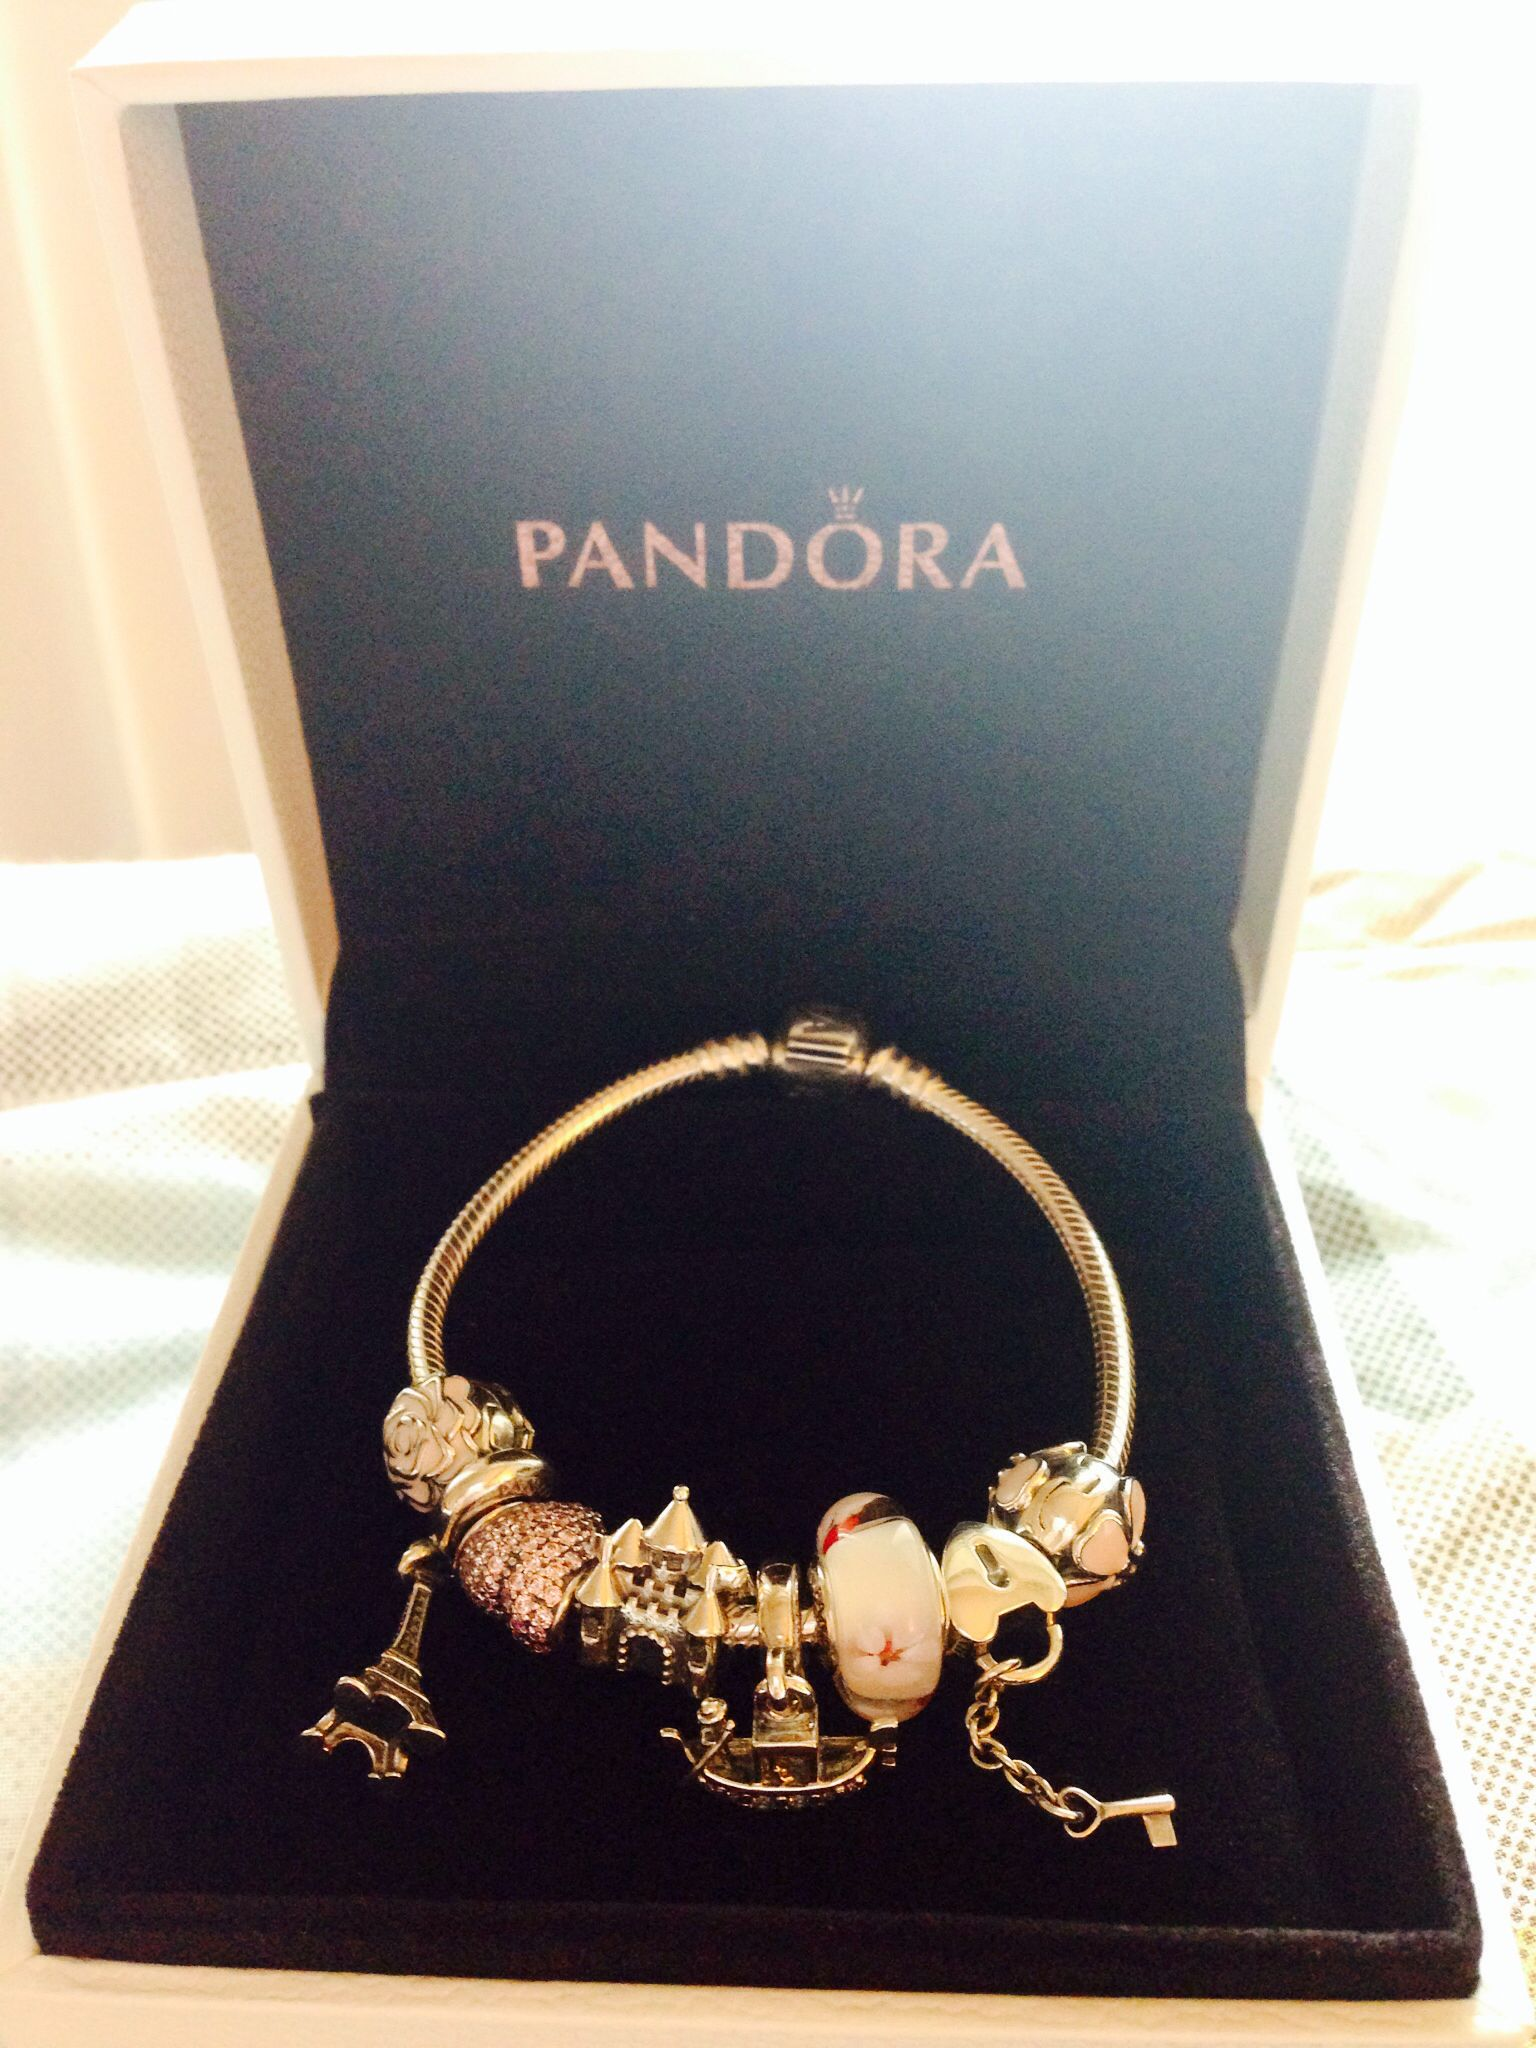 forever bangle paris img meaning s pandora a my contest box of on serenity charms charm the bracelet few bangles